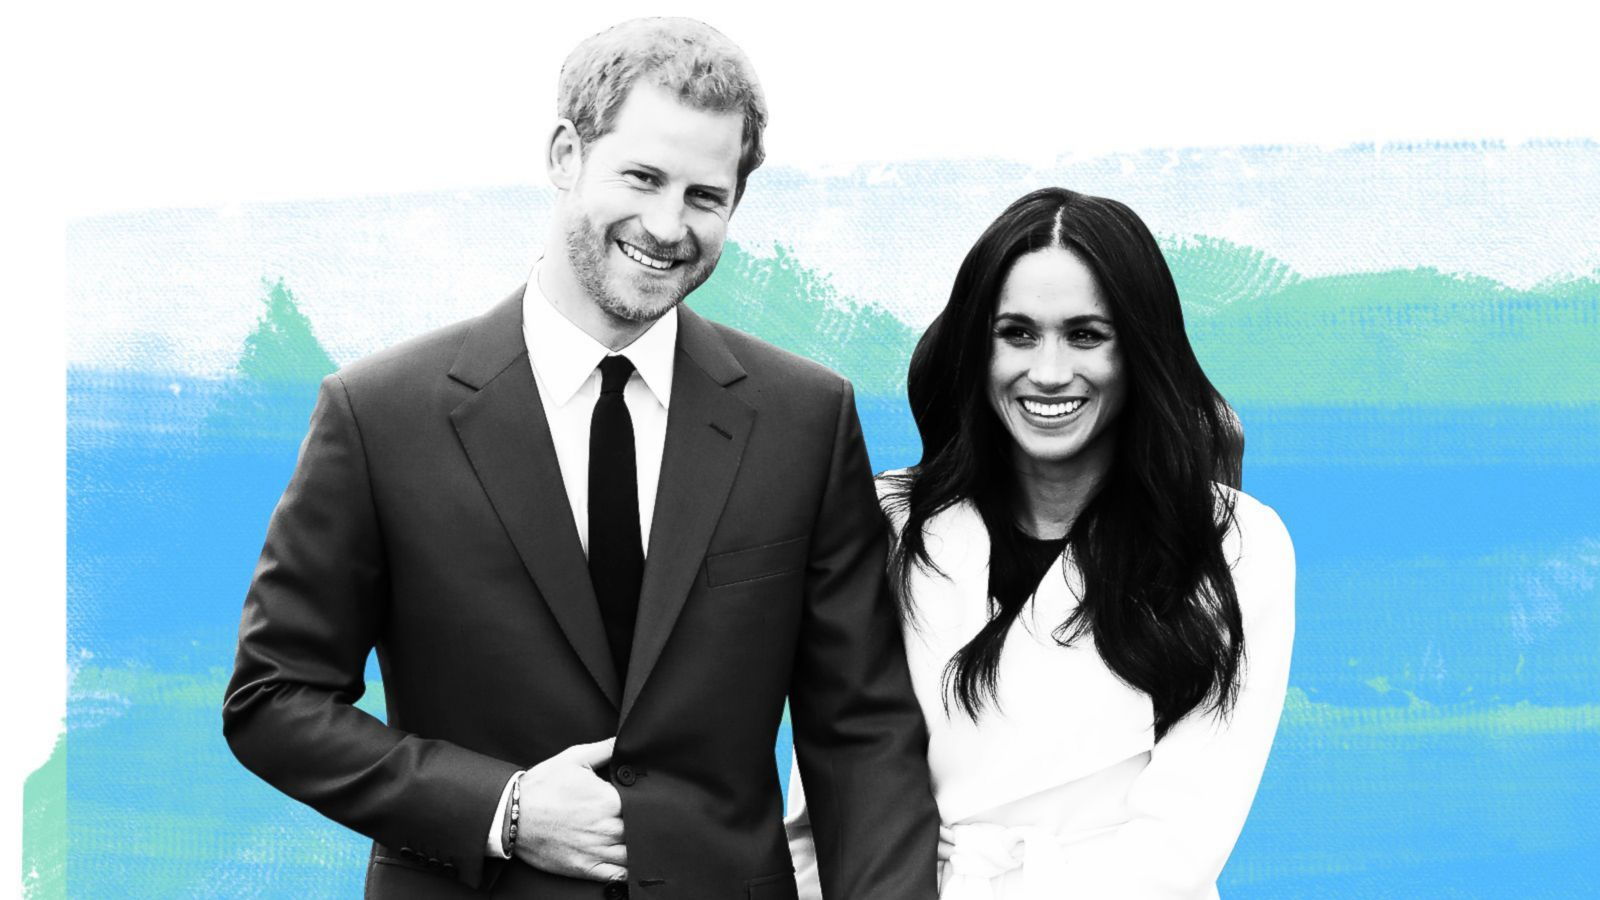 Meghan Markle Advocated For Women Long Before Becoming A Royal To Be